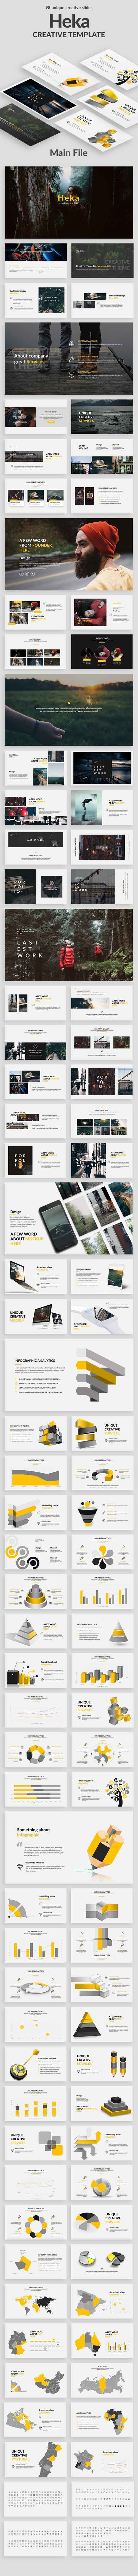 Heka Creative Powerpoint Template 20005441